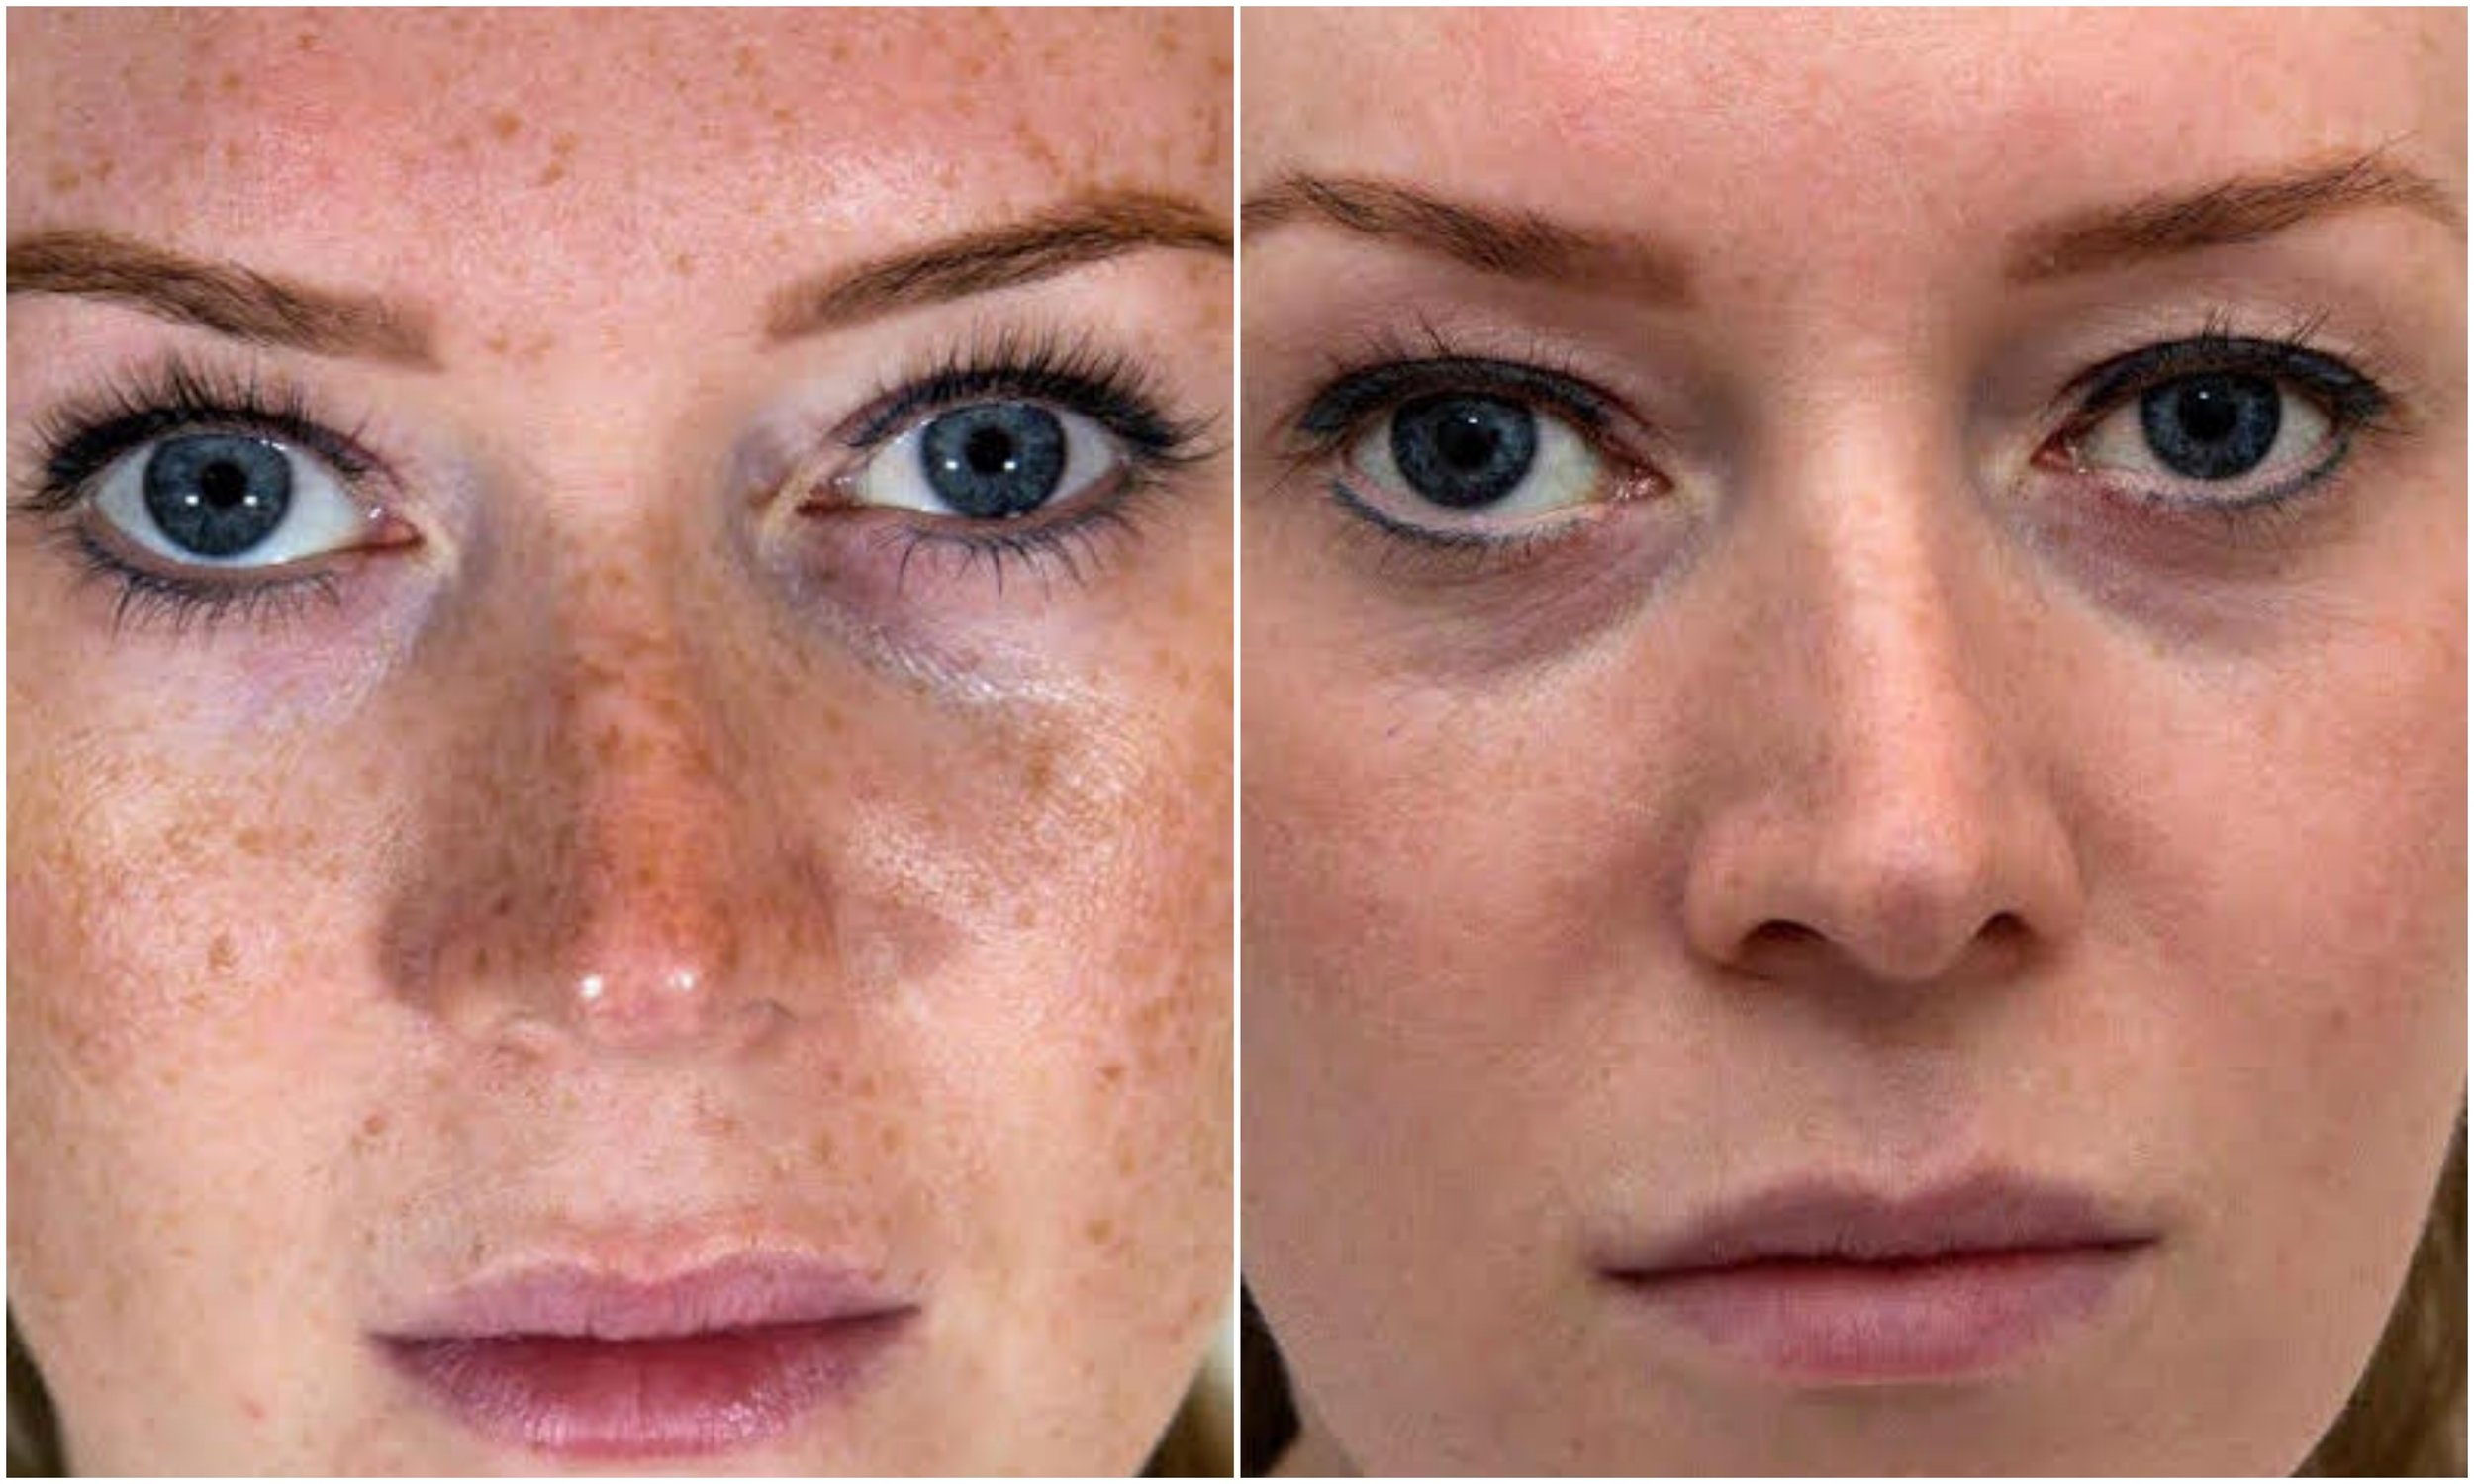 Freckles removed, even skin tone achieved using Perfect Derma Peel (Intense Peel)